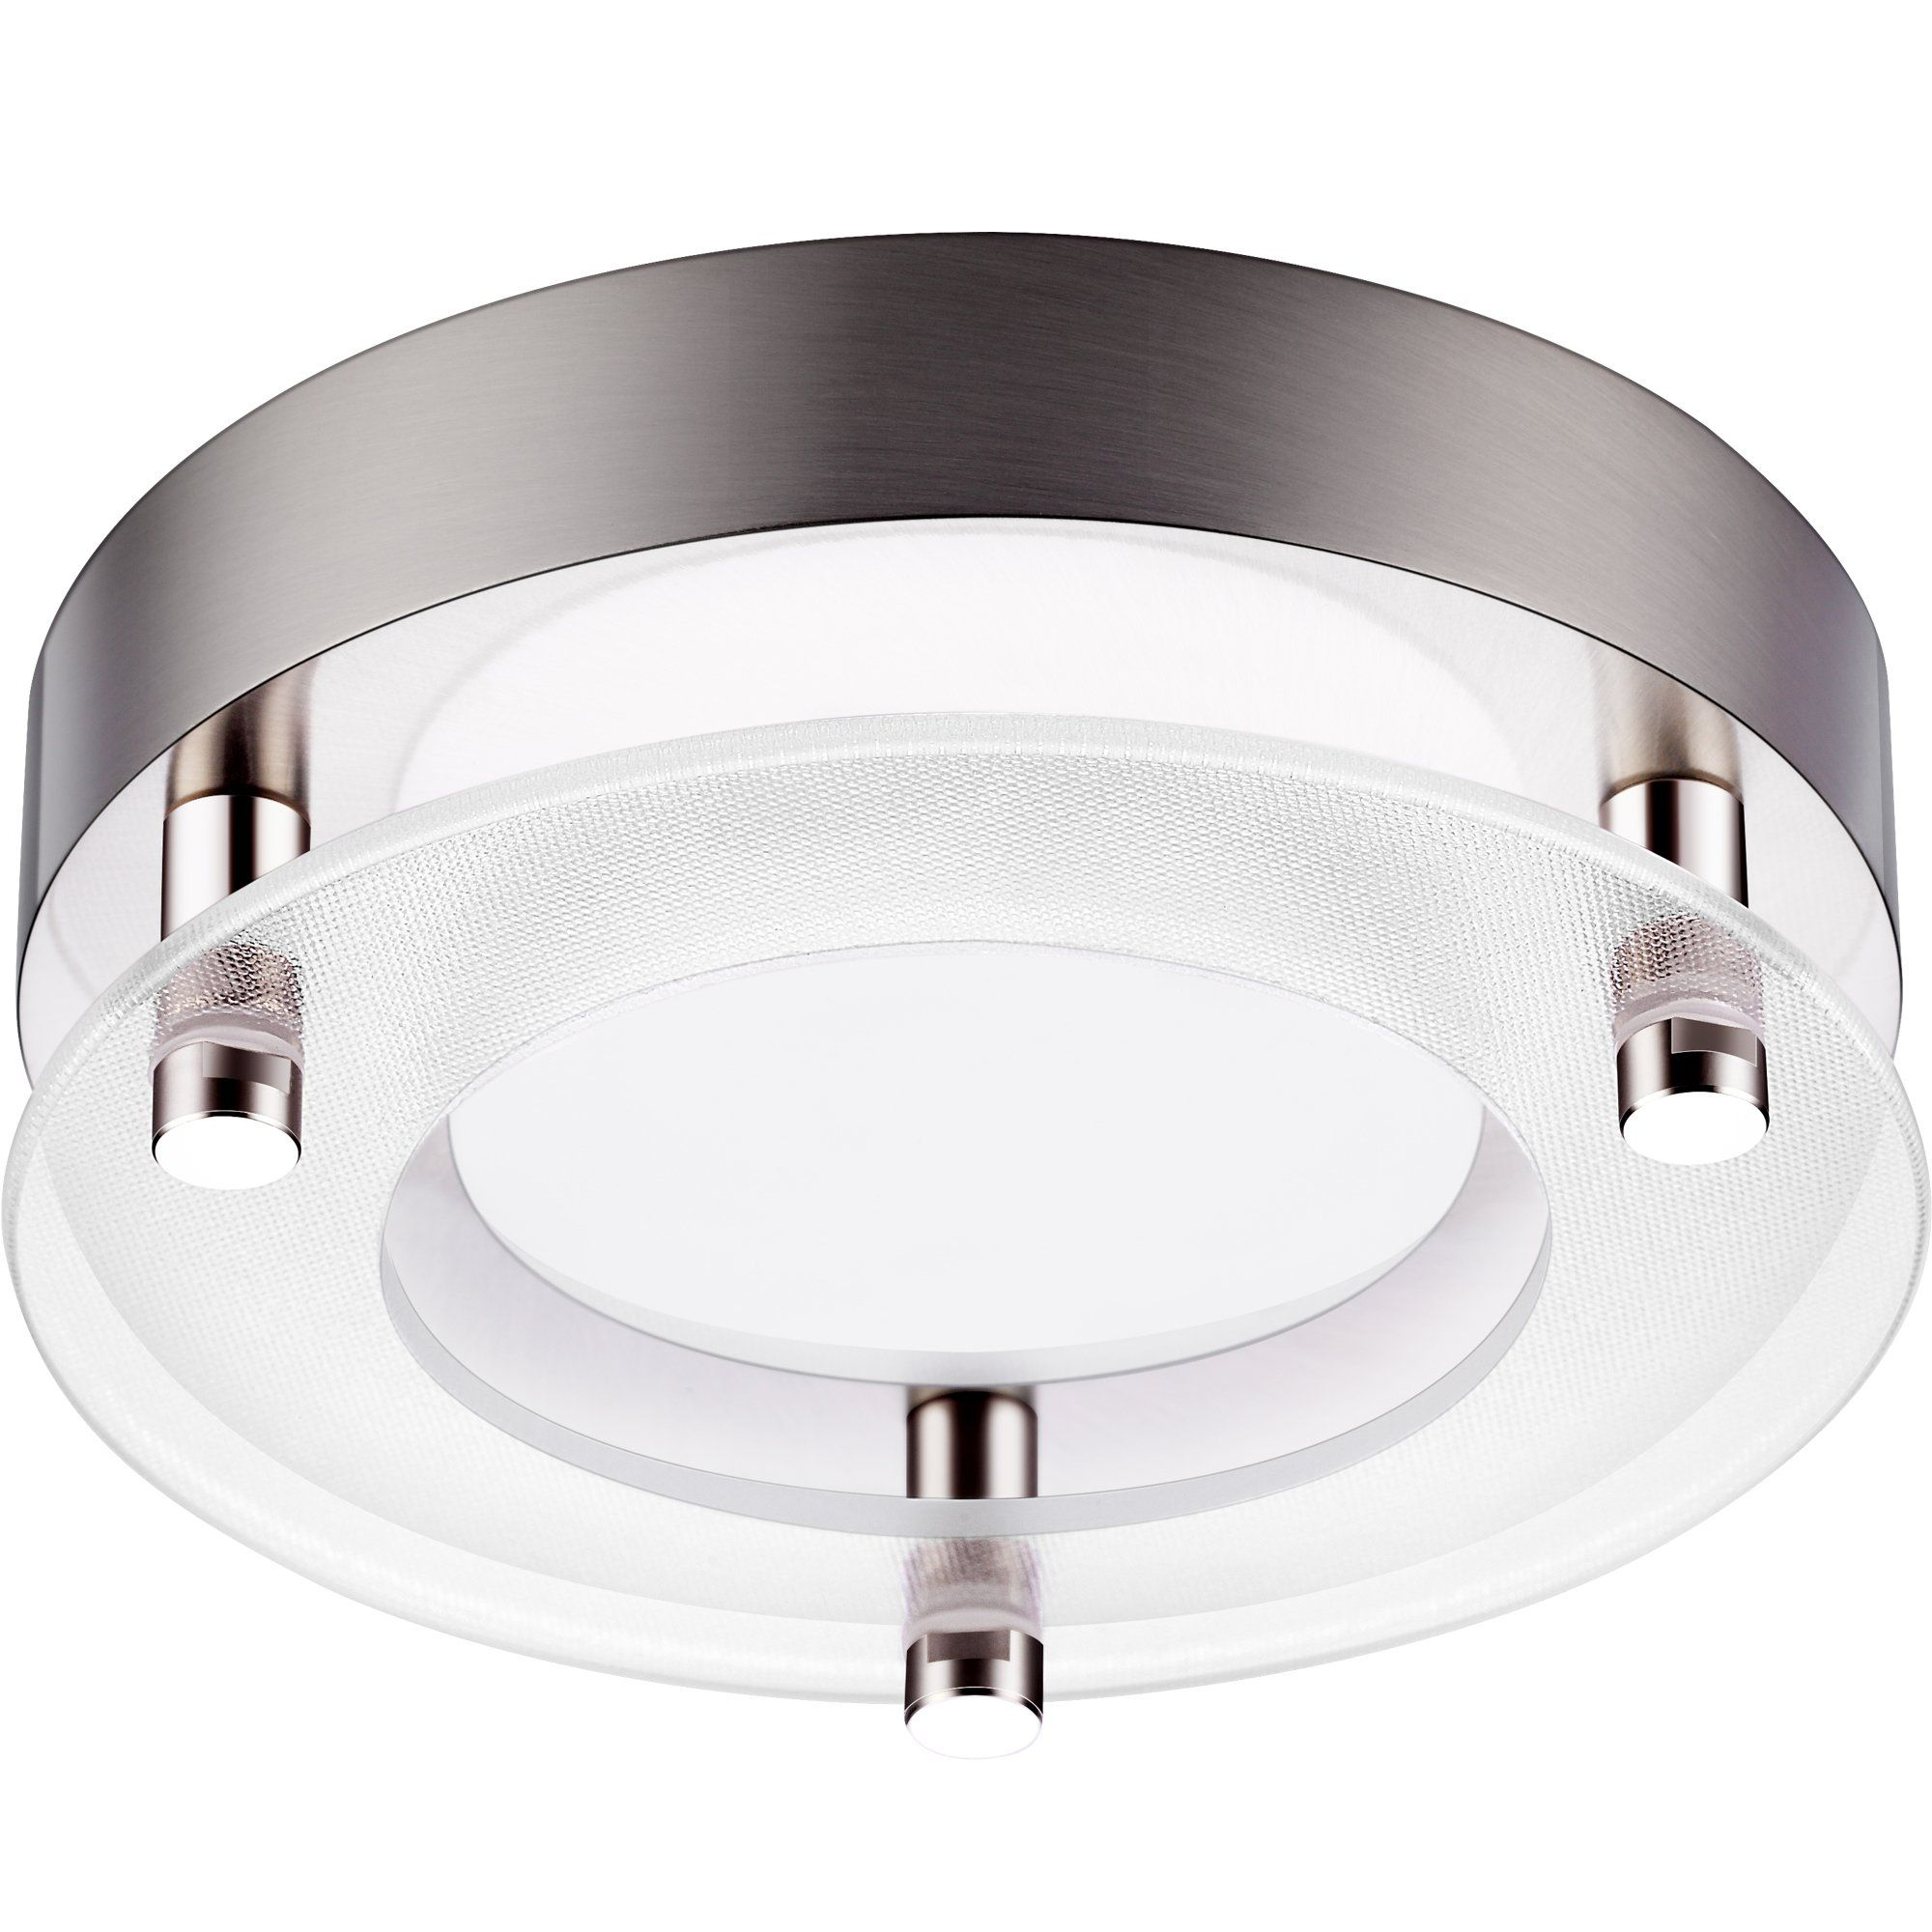 GetInLight Dimmable Surface Mount LED Ceiling Light, 5.5 Inch, 12W(60W  Equivalent